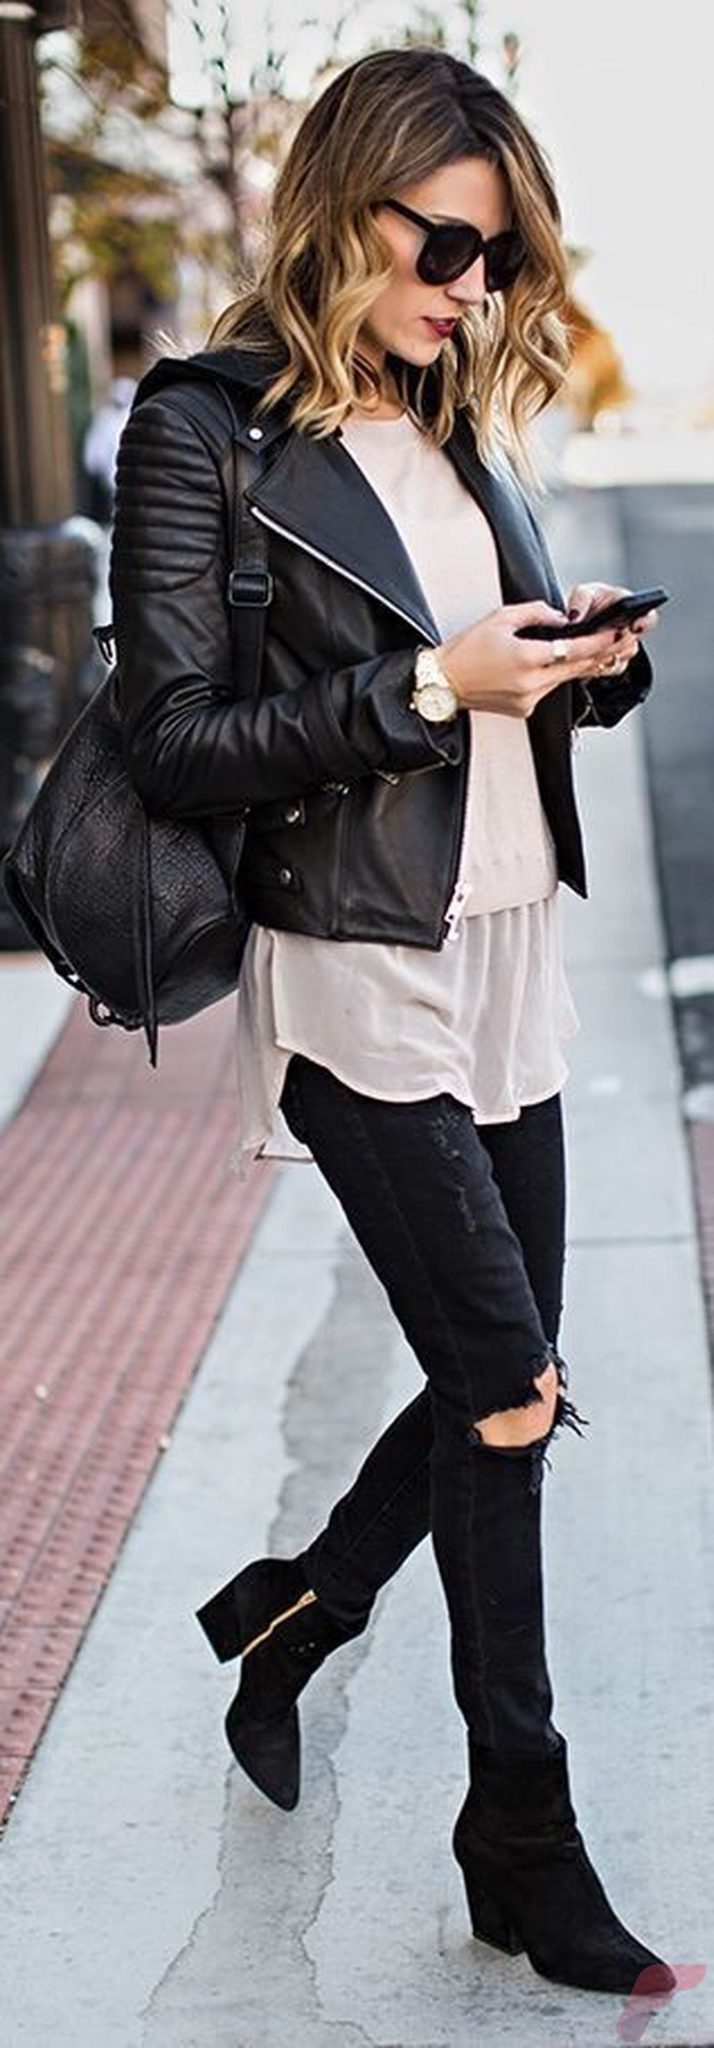 Black leather jacket outfit 36